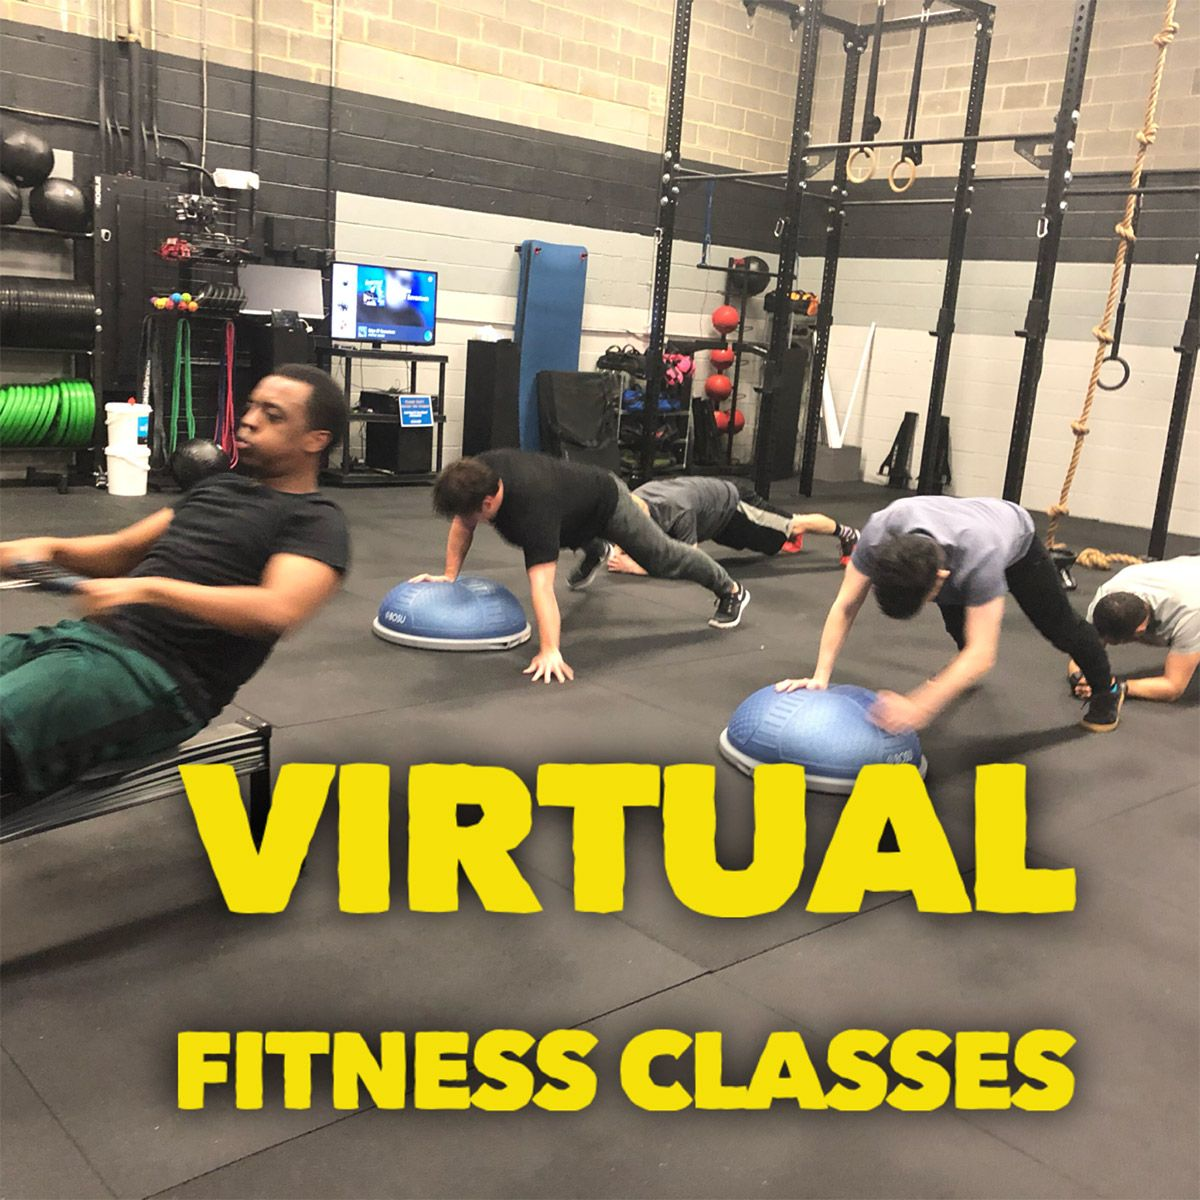 Online Fitness Classes Archives Sand And Steel Fitness Fitness Class Online Workouts Fitness